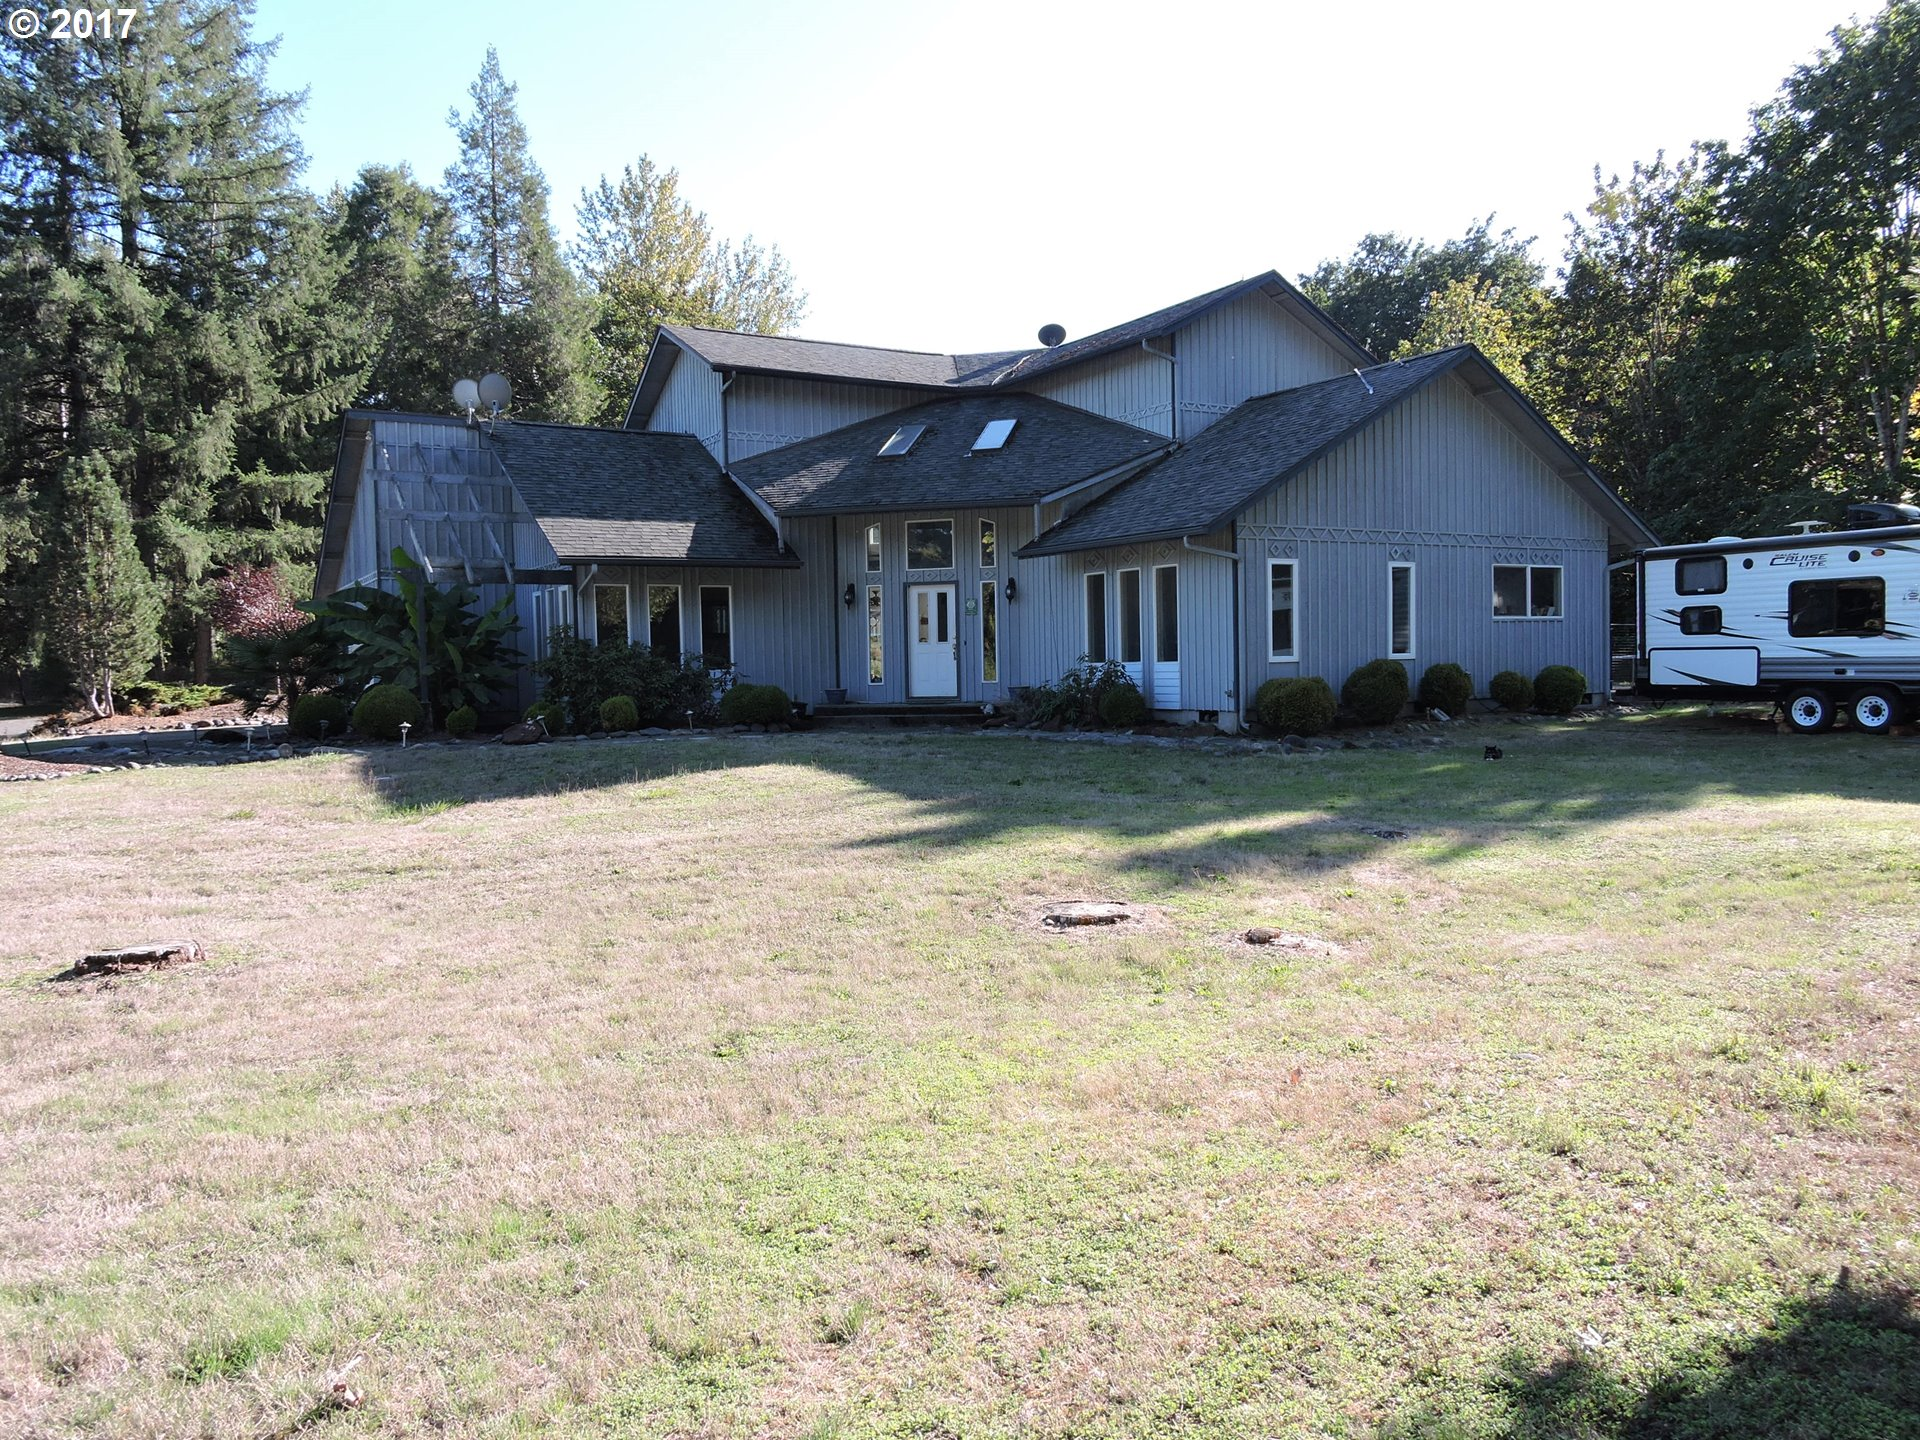 Don't Miss Your Chance To Own This Beautiful Home Near The McKenzie River, Sitting On A Gorgeous 5 Acre Lot. Separate Living Quarters On Main Floor w/Full Kitchen & Vaulted Living Rm. This Lg 2919 SqFt Home Features: Lg Master Suite w/2 Walk In Closets, Jacuzzi Tub, Shower, Deck & Walk In Attic/Storage Space. 2nd Bedroom W/Walk In Closet. 2 Rv Spots w/ Electricity & Water. One 2 Car Garage & Separate 1 Car Garage. Fenced & Cross Fenced.